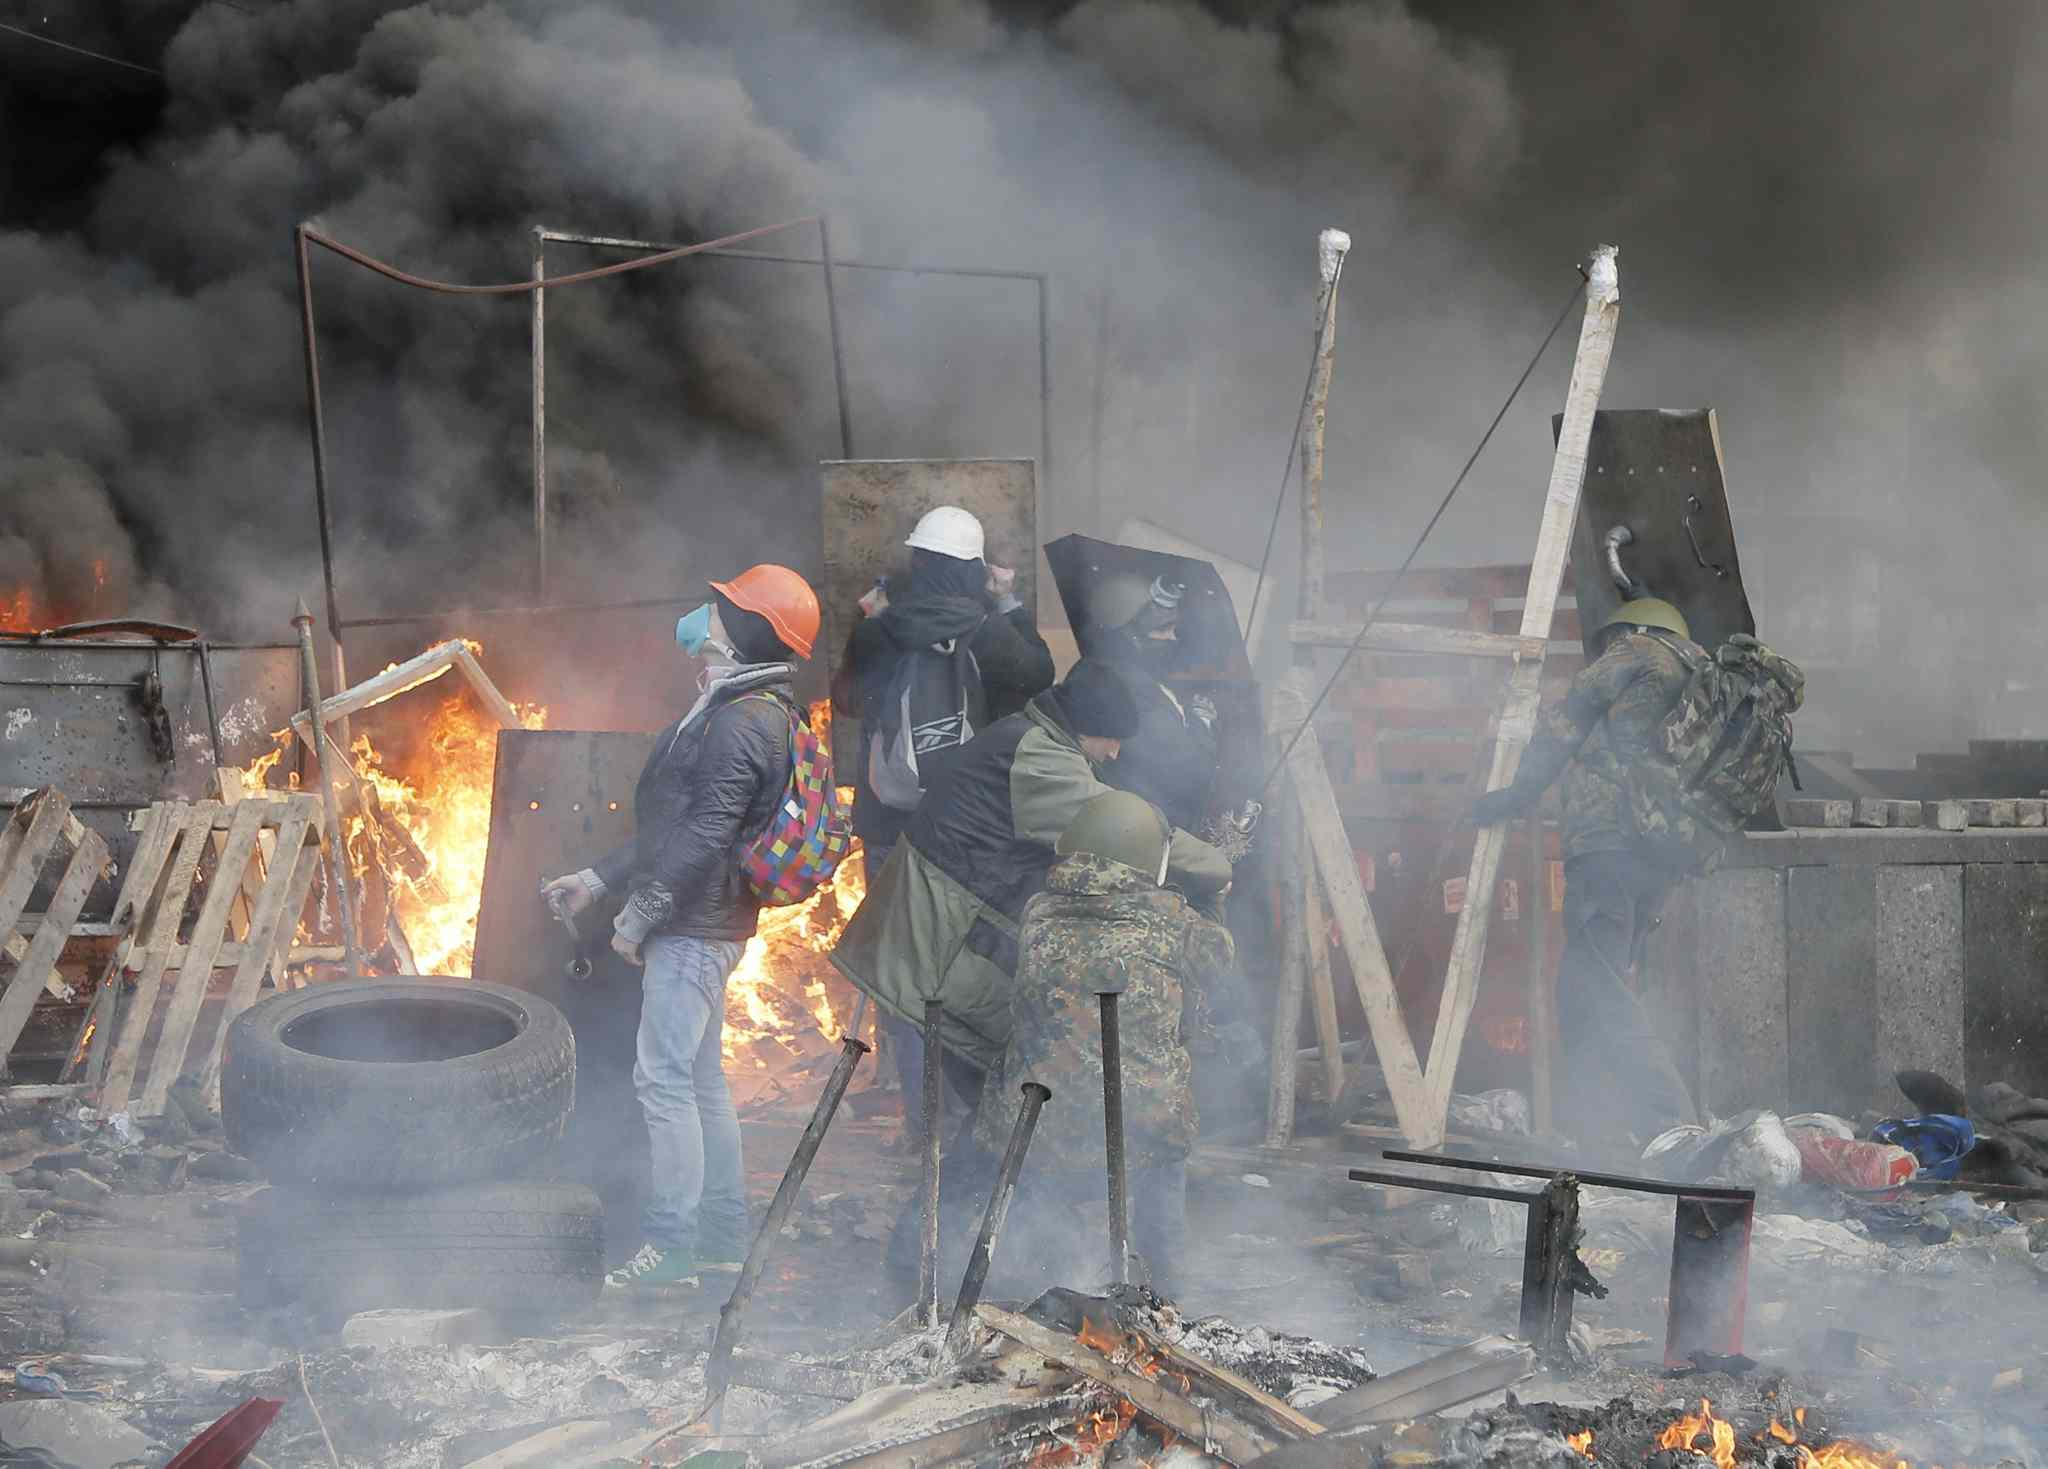 Anti-government protesters use a catapult during clashes with riot police in Kyiv's Independence Square, the epicentre of the country's current unrest, on Wednesday in Kyiv. The deadly clashes in Ukraine's capital have drawn sharp reactions from Washington, generated talk of possible European Union sanctions and led to a Kremlin statement blaming Europe and the West.